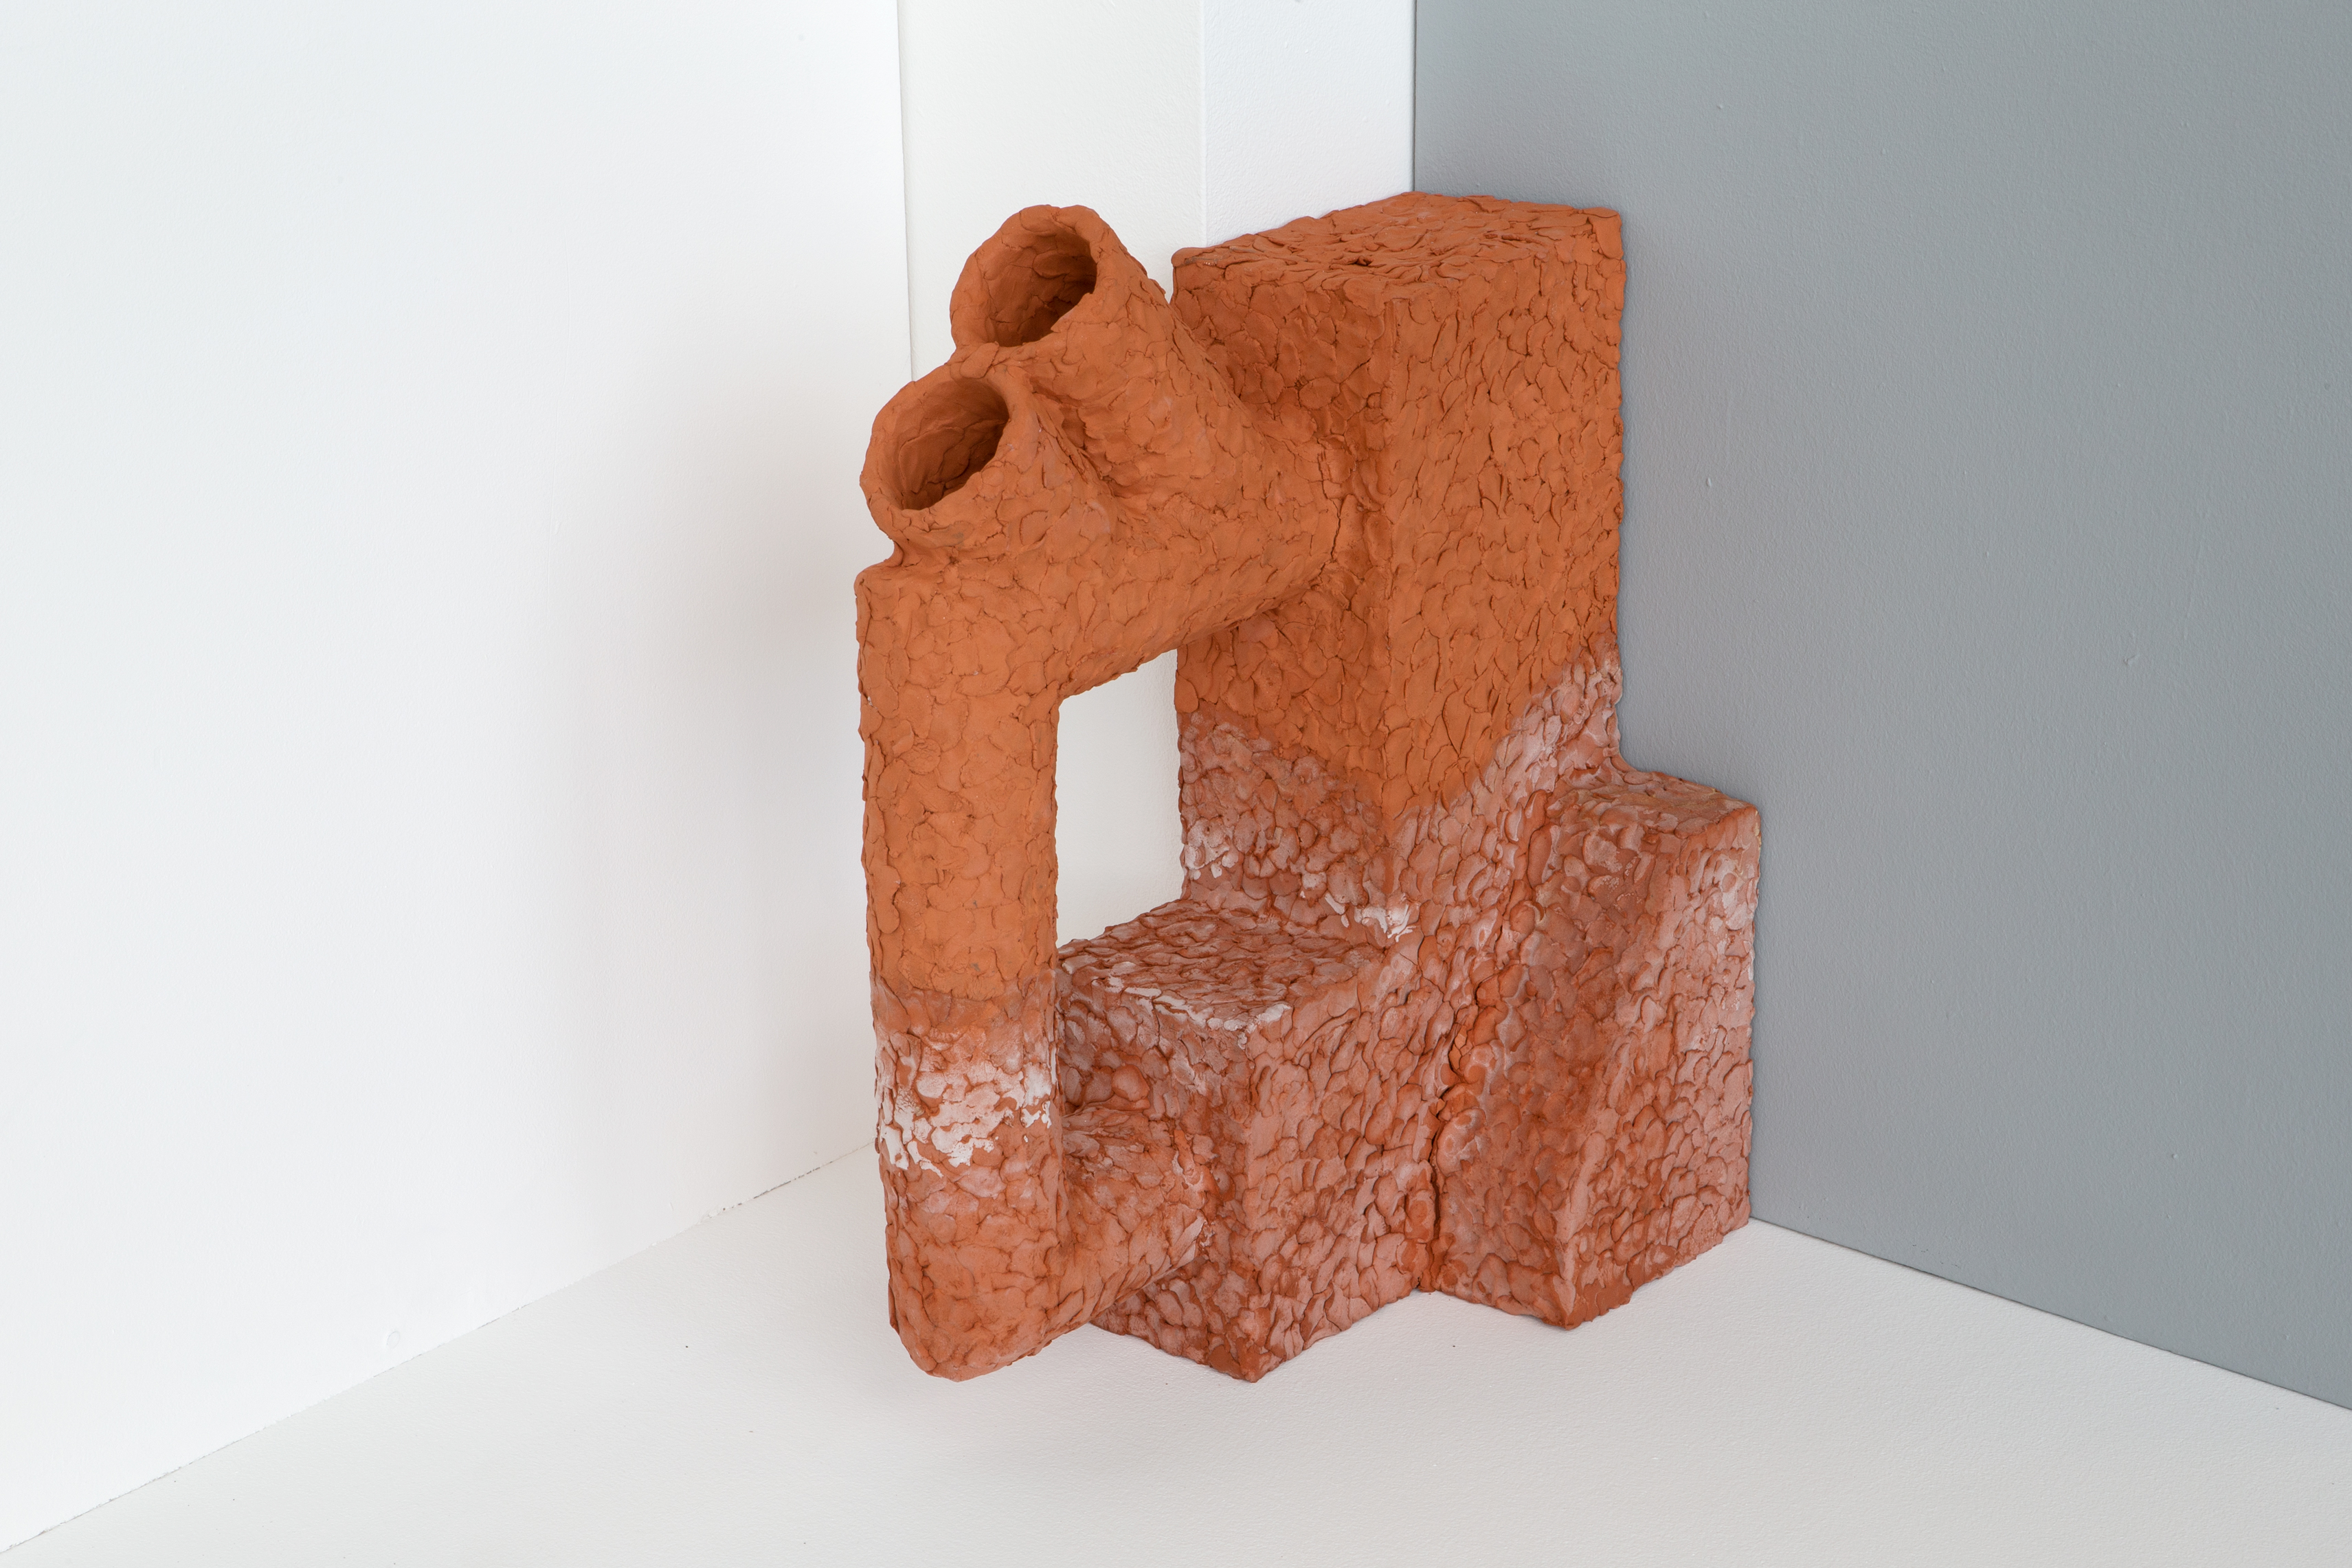 Laurence Sturla, He Preferred a Cleaner Sky (IV), 2019, unglazed earthenware clay, salt, 50 x 70 x 20 cm